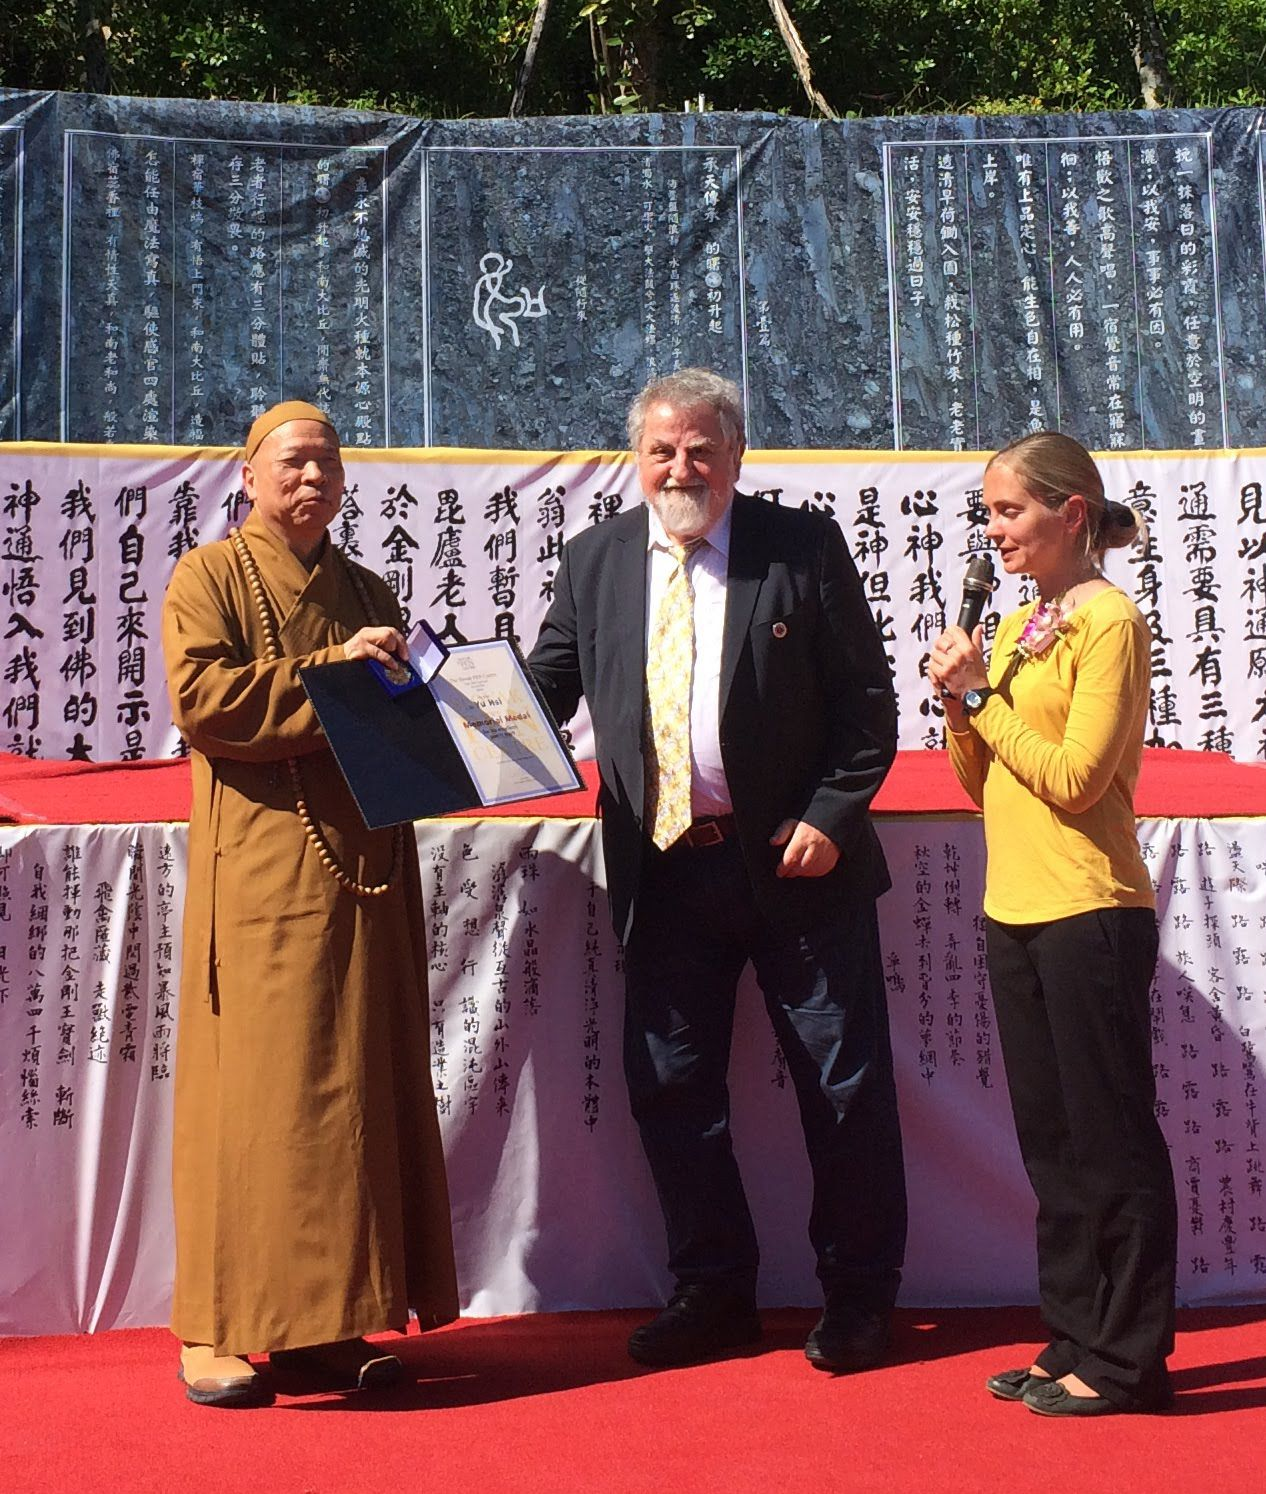 001.Milan Richter, President of Slovak PEN, confers upon Yu Hsi, Taiwanese poet and munk, Slovak PEN´s memorial medal with a diploma